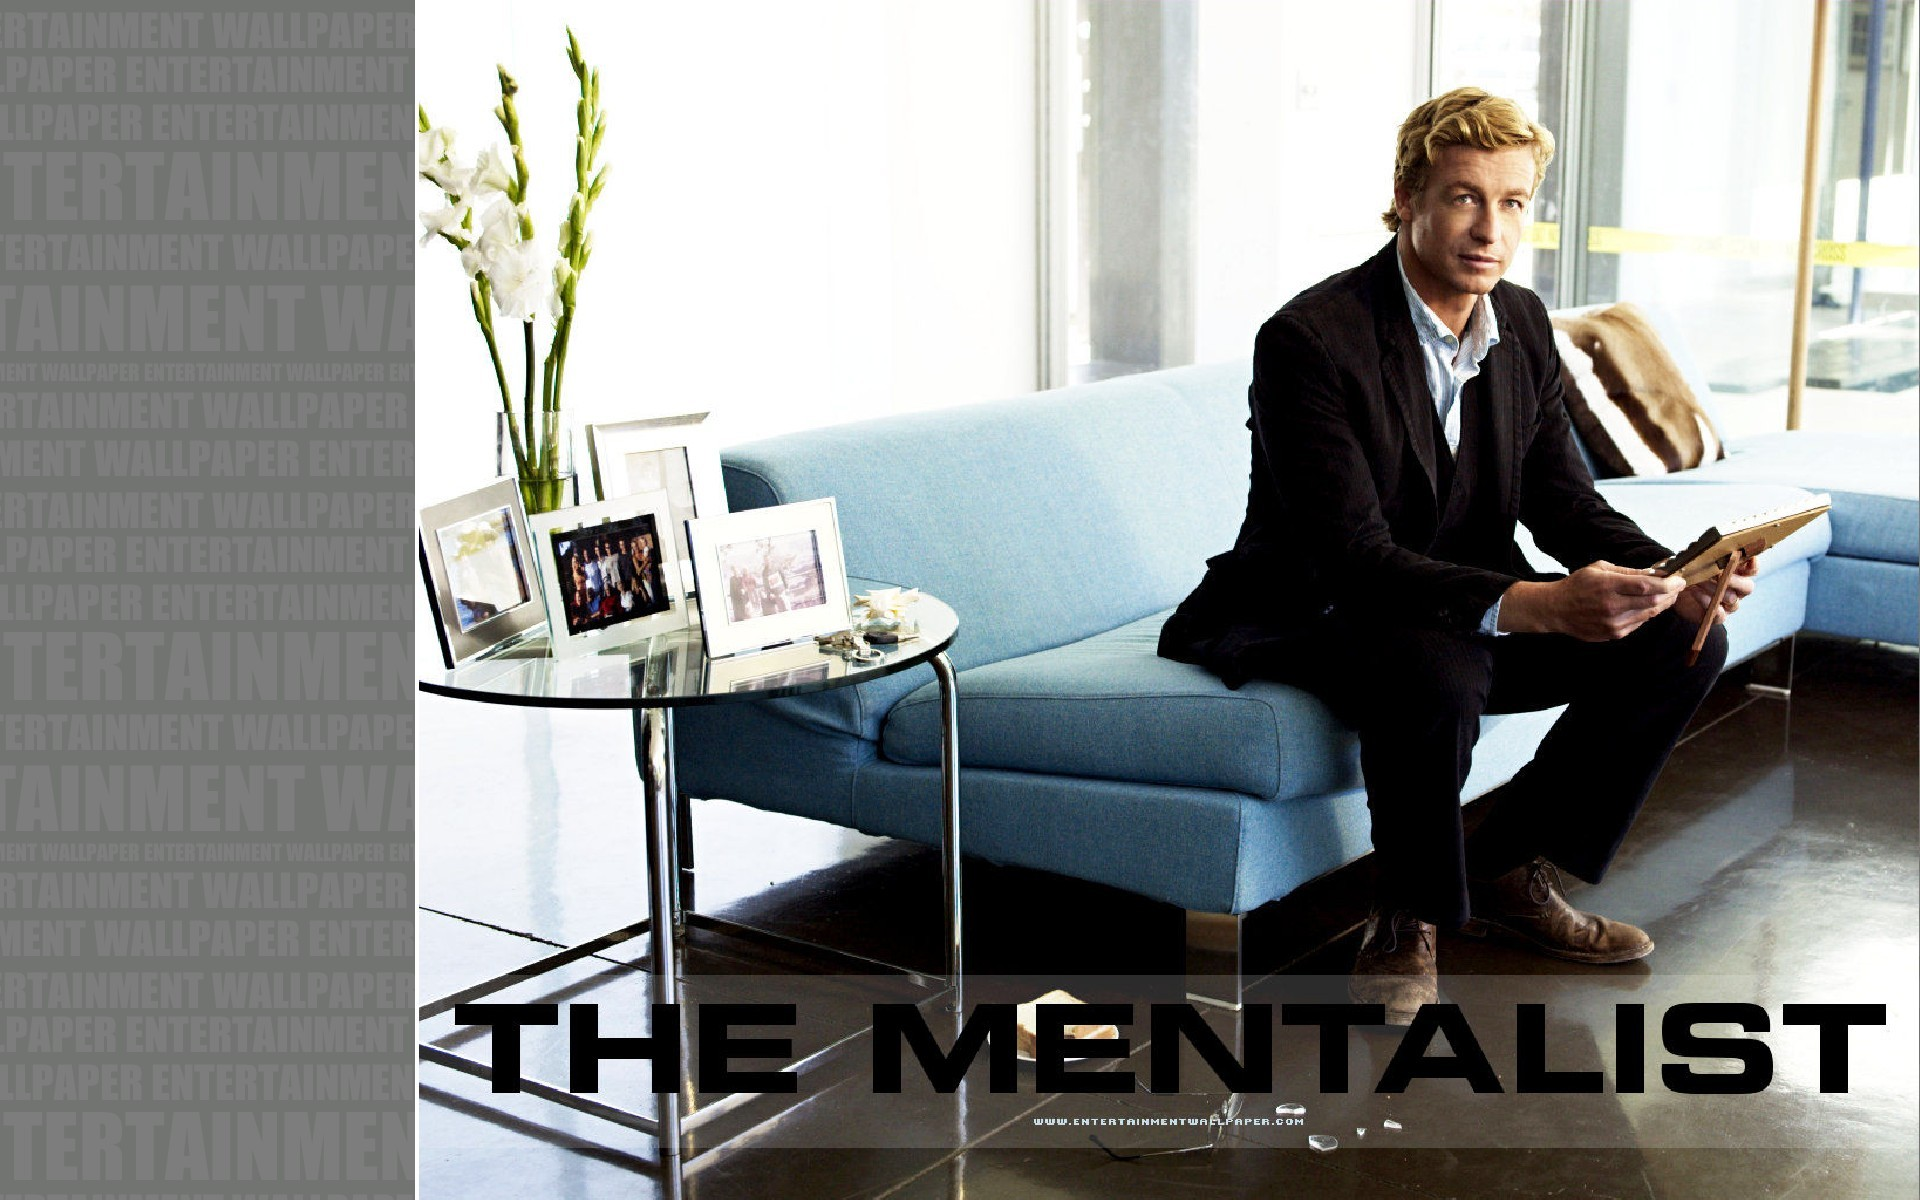 1920x1200 The Mentalist Wallpaper - Original size, download now.